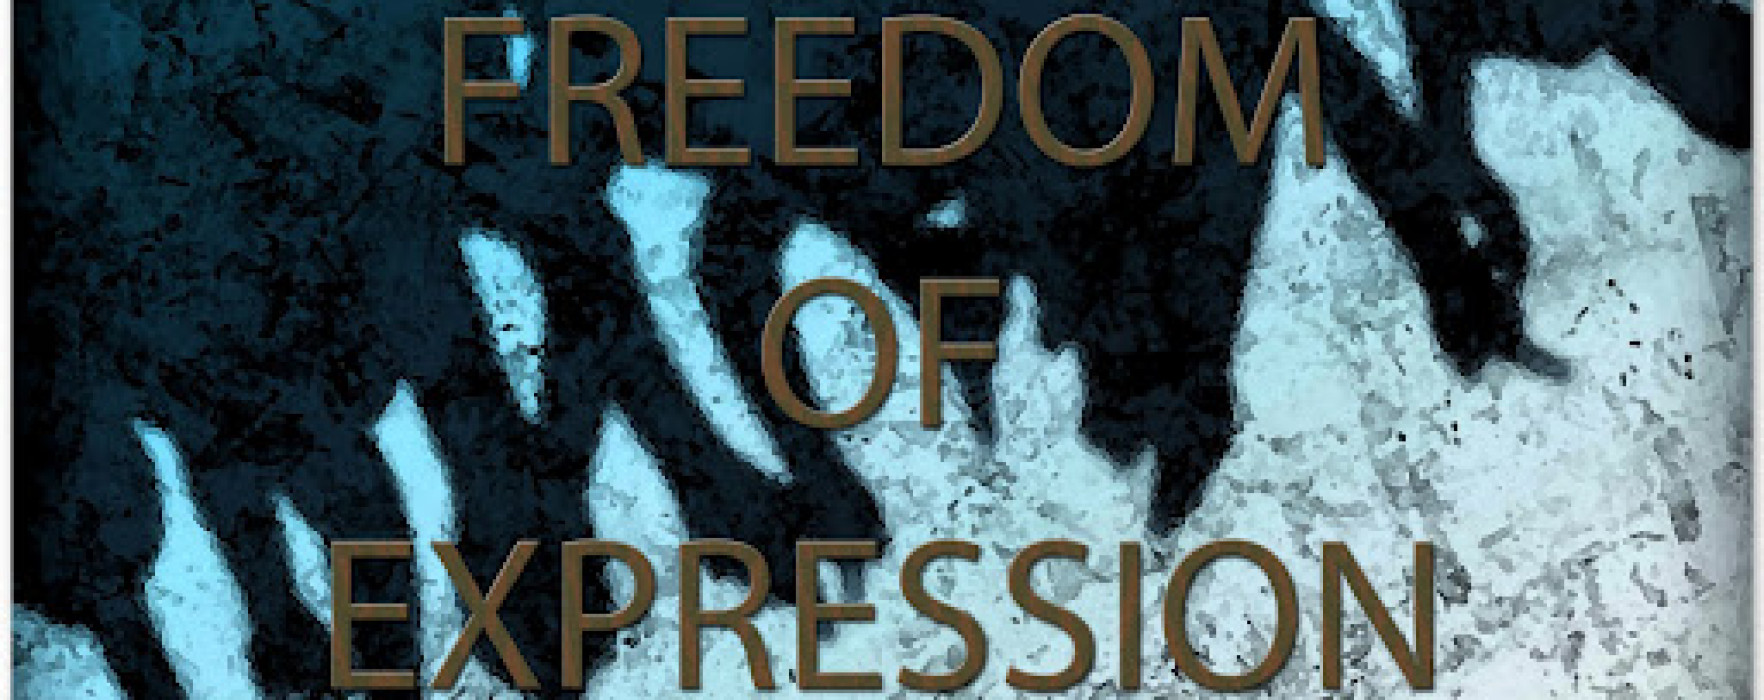 Freedom of Expression (Zalen ngaiin thu phuang thilhnak)